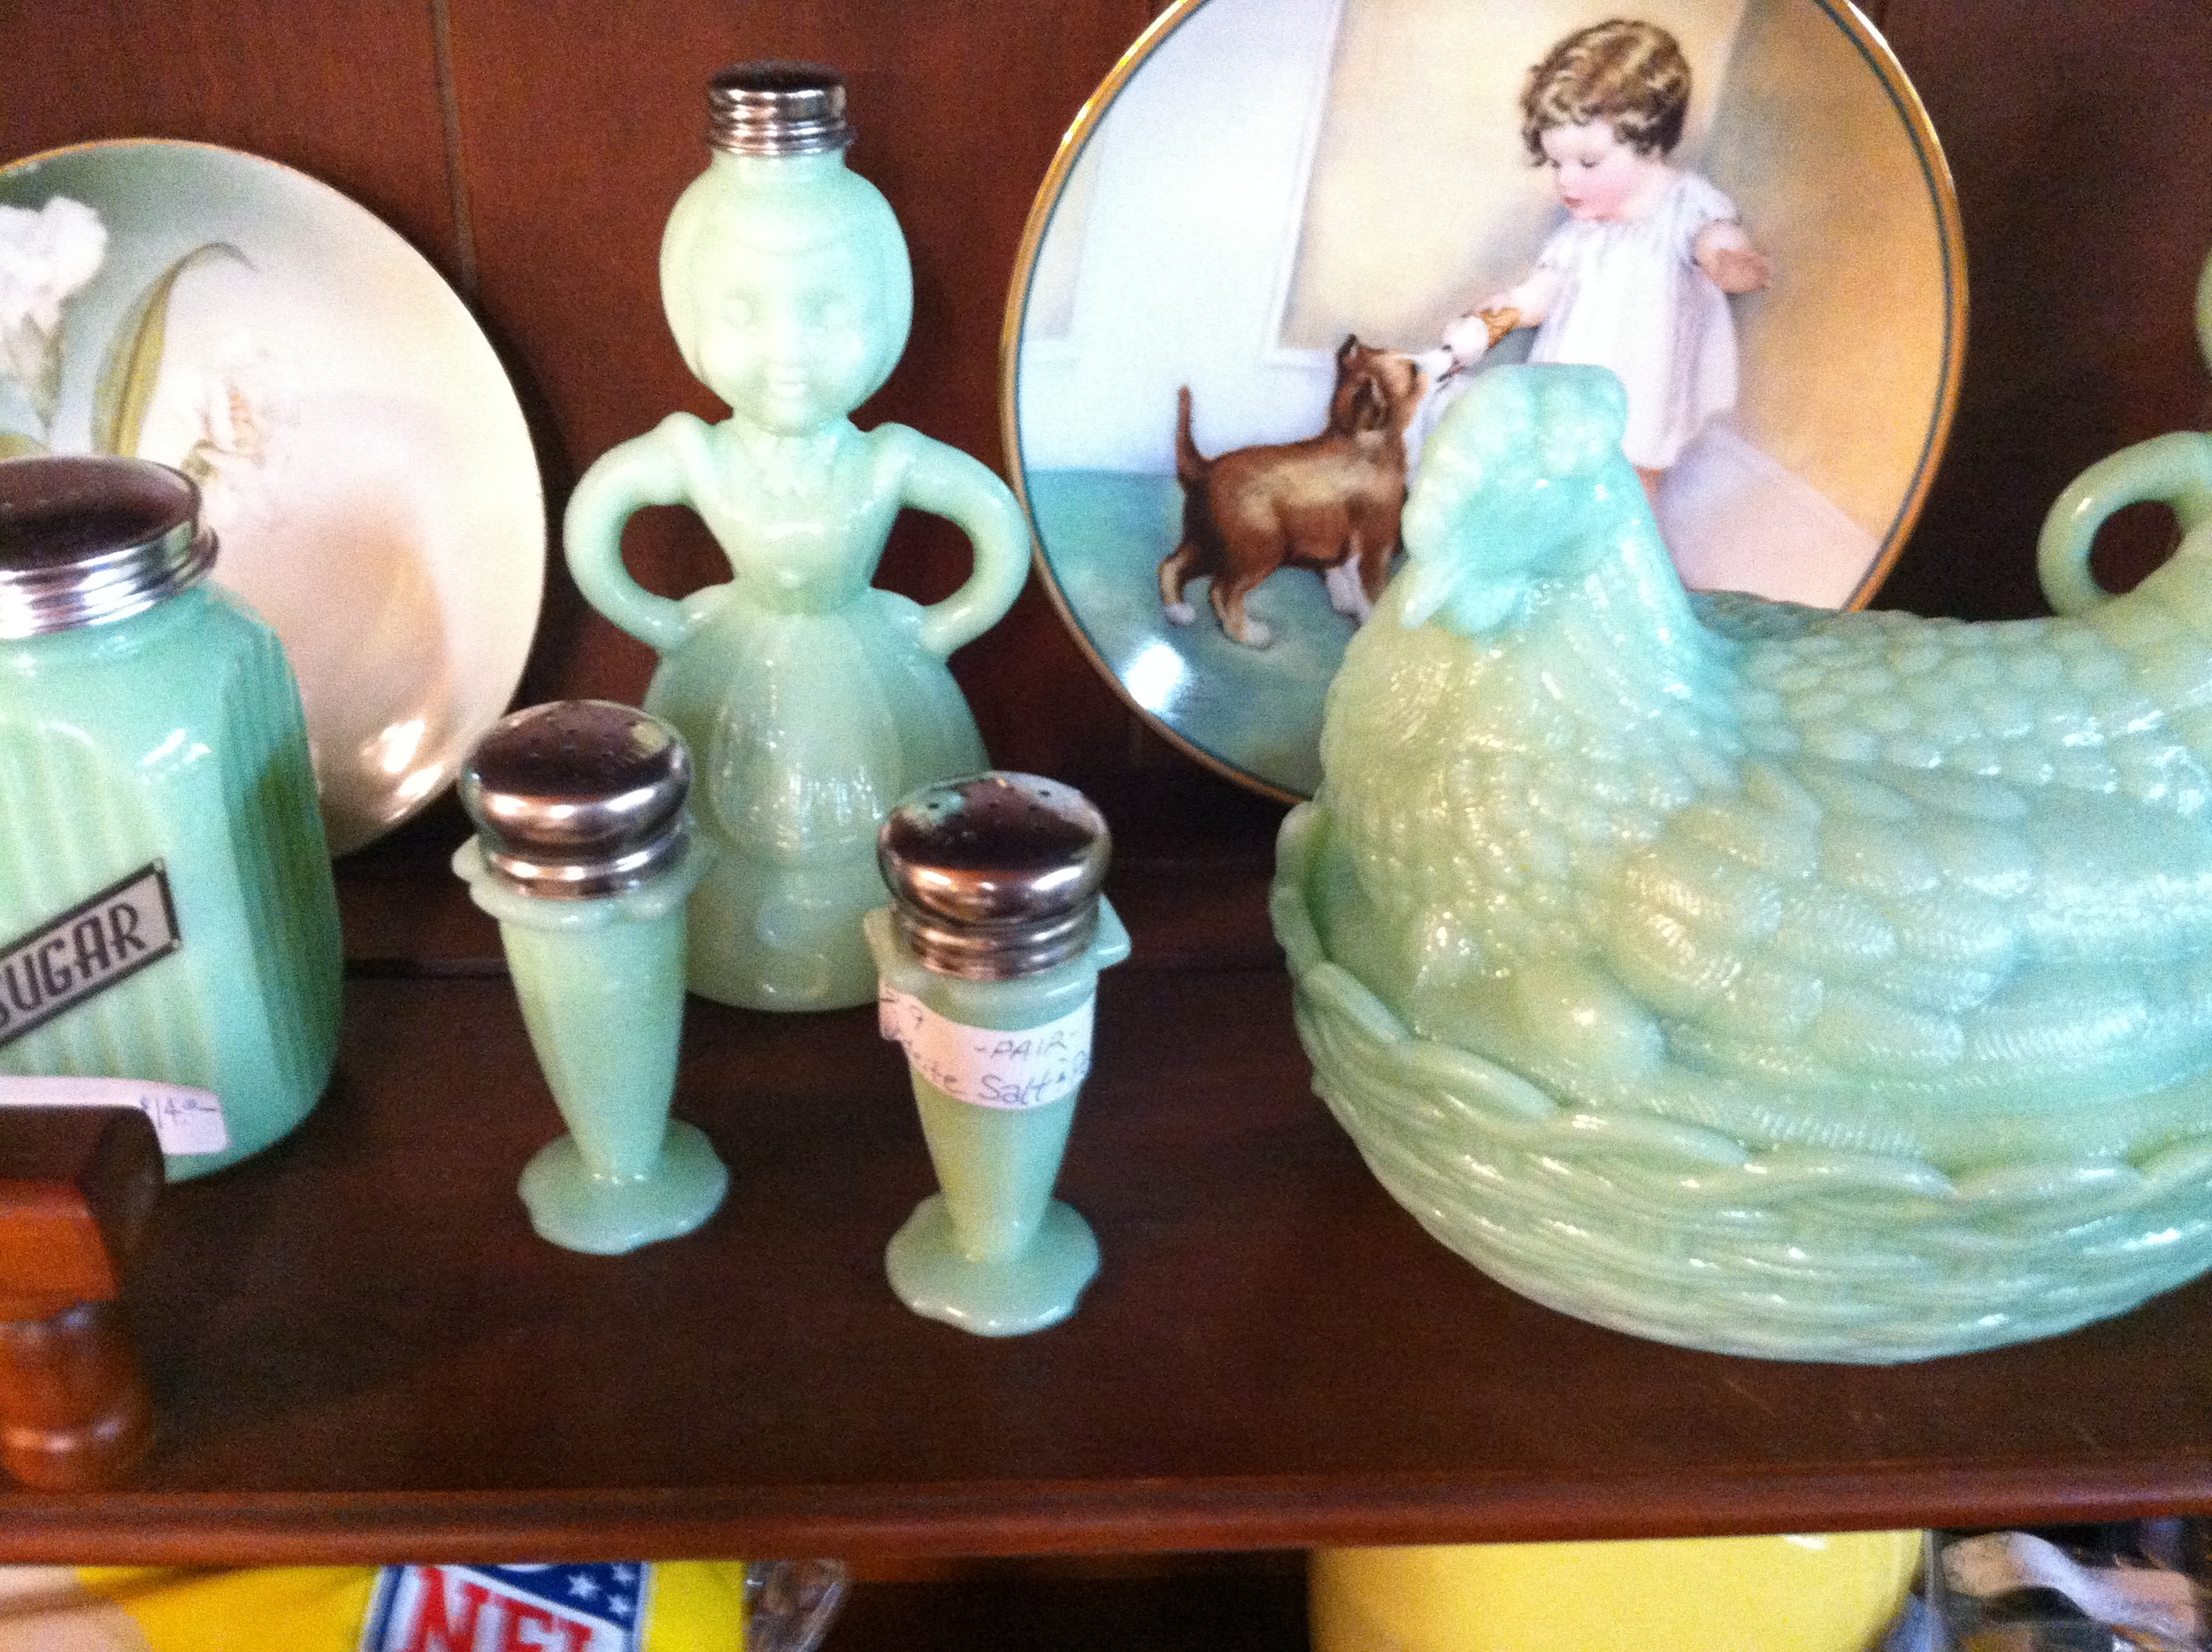 A tight shot of vintage jadeite syrup and salt and pepper shakers in thrift store